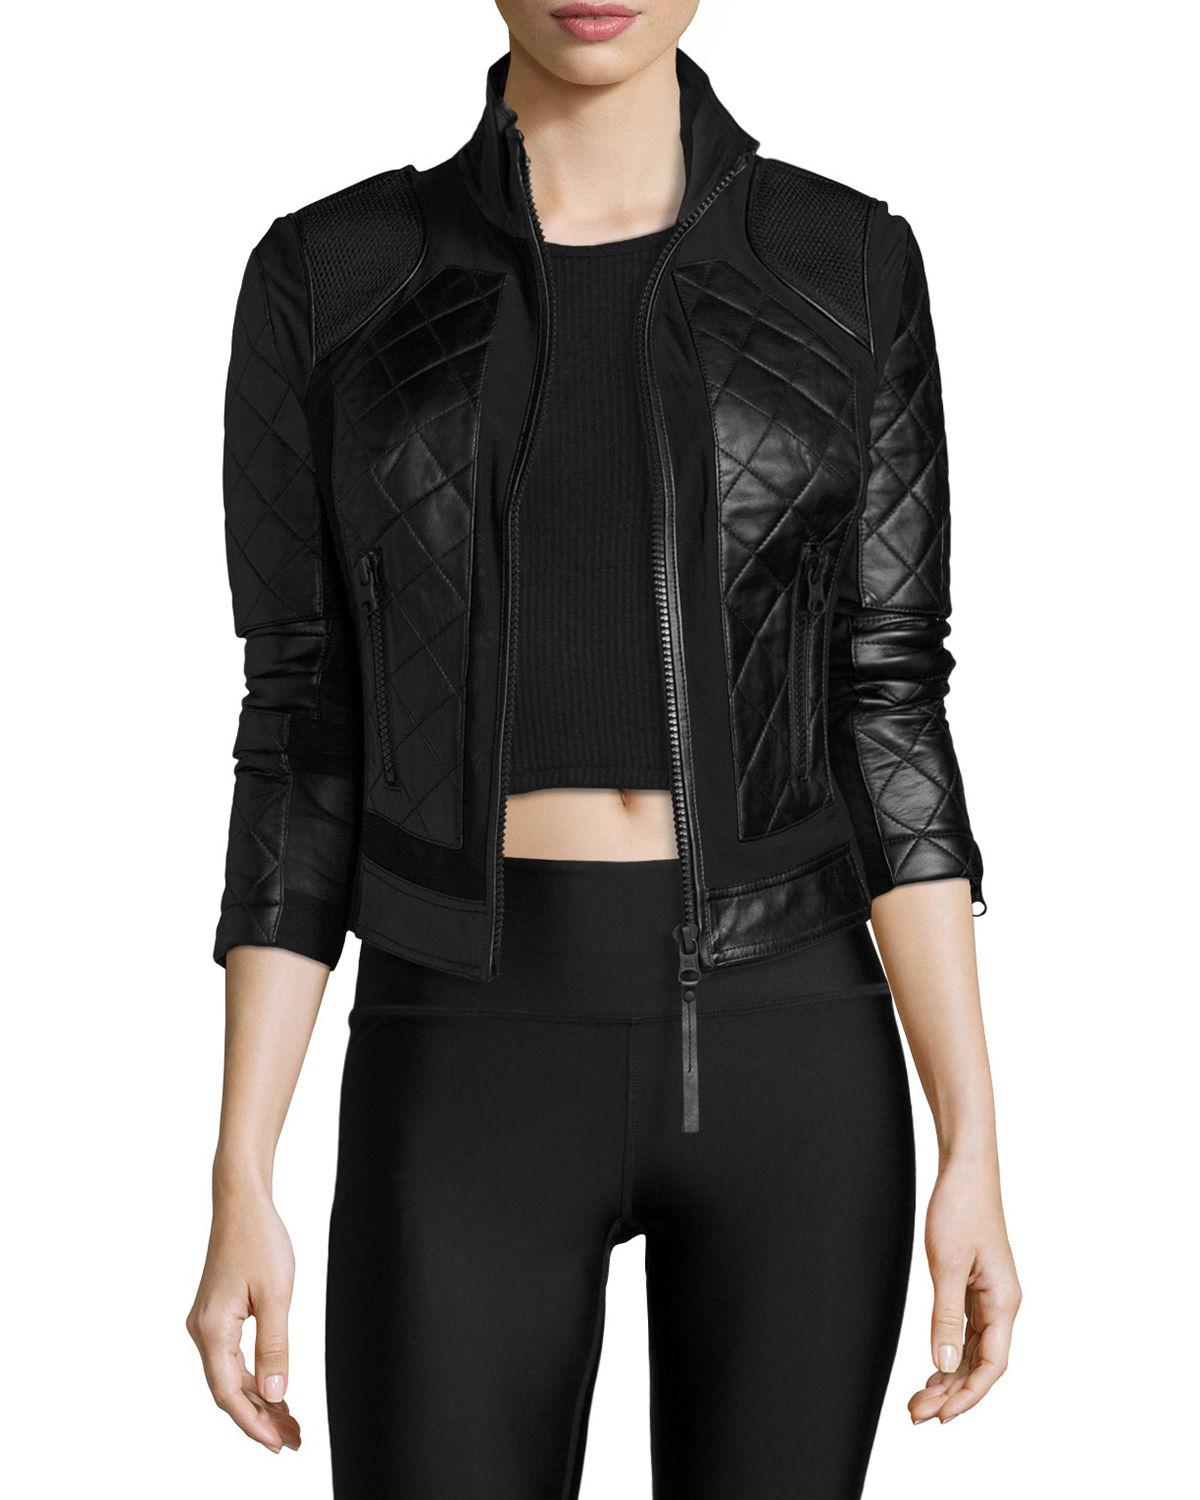 5b0e6a5790bd Lyst - BLANC NOIR Quilted Leather   Mesh Moto Jacket in Black